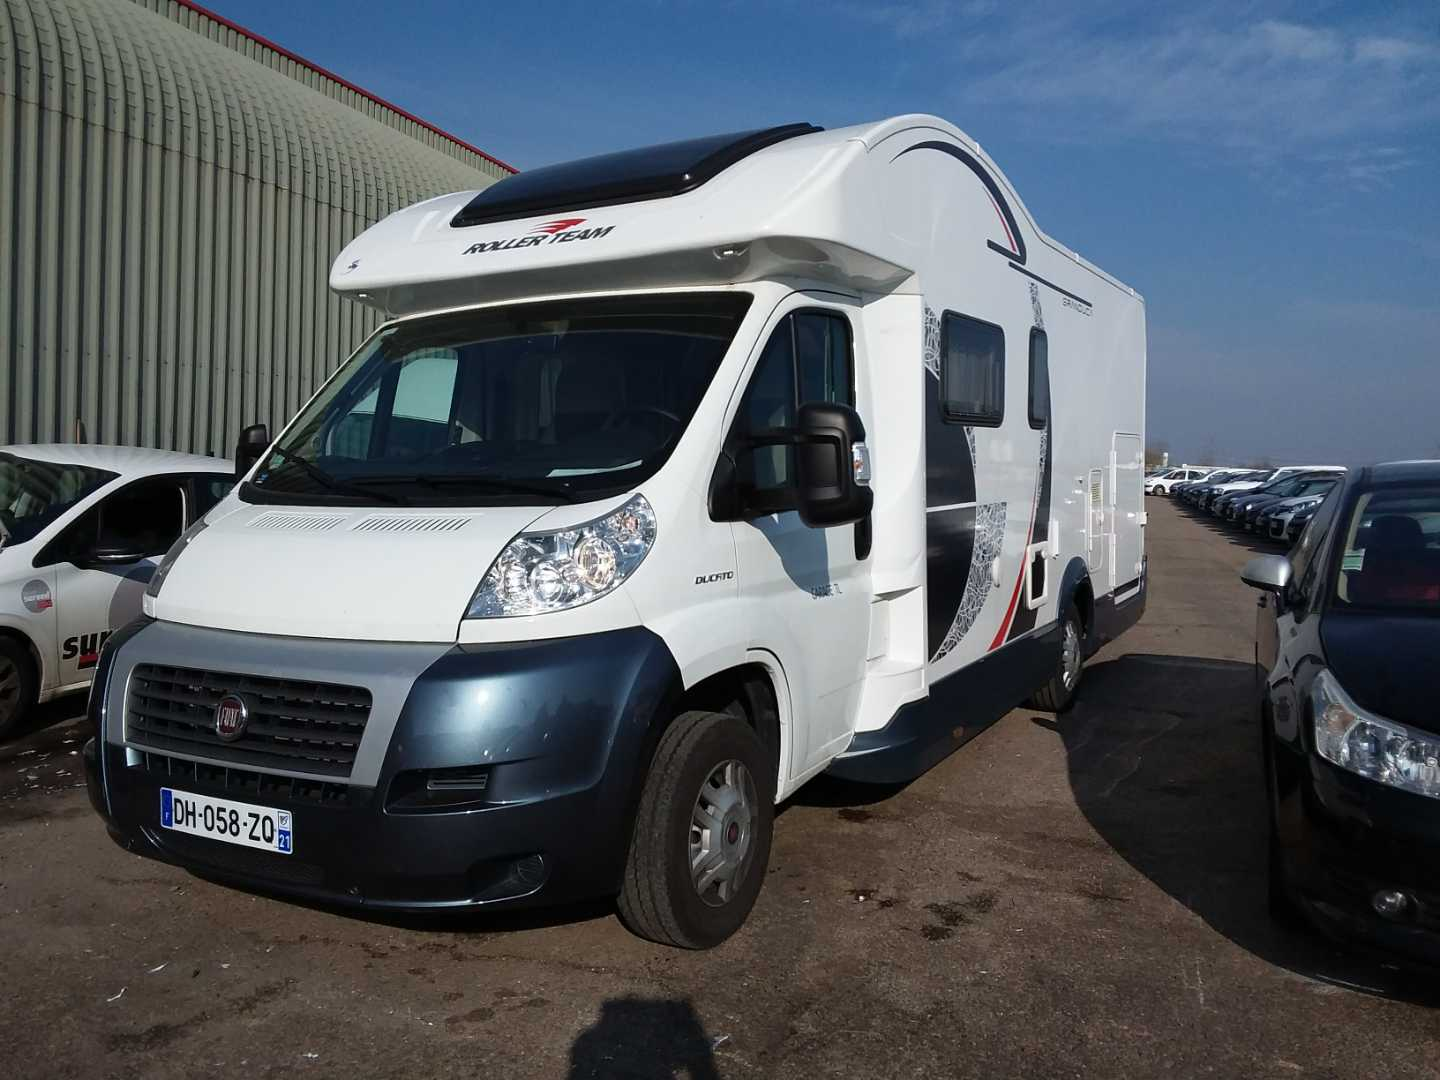 Fiat Ducato My Chassis Cabine 09 2011 04 201 Camping Car Rollerteam Granduca Tl Ducato 3 5 L 2 3 Mjt 130 Pack Alcopa Auction